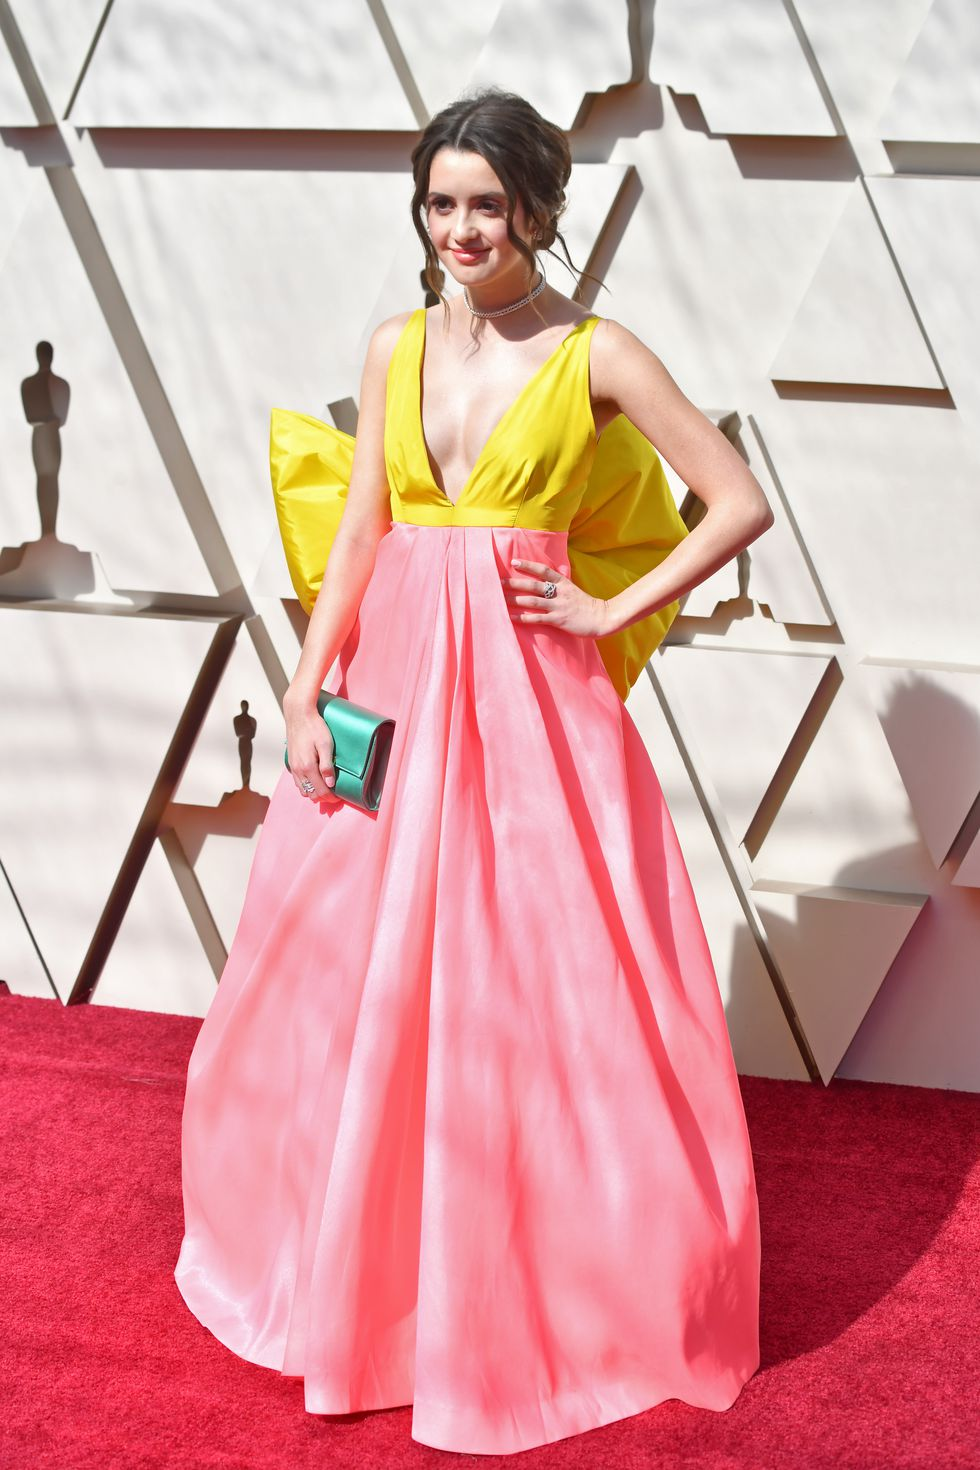 laura-marano-attends-the-91st-annual-academy-awards-at-news-photo-1127120828-1551044429